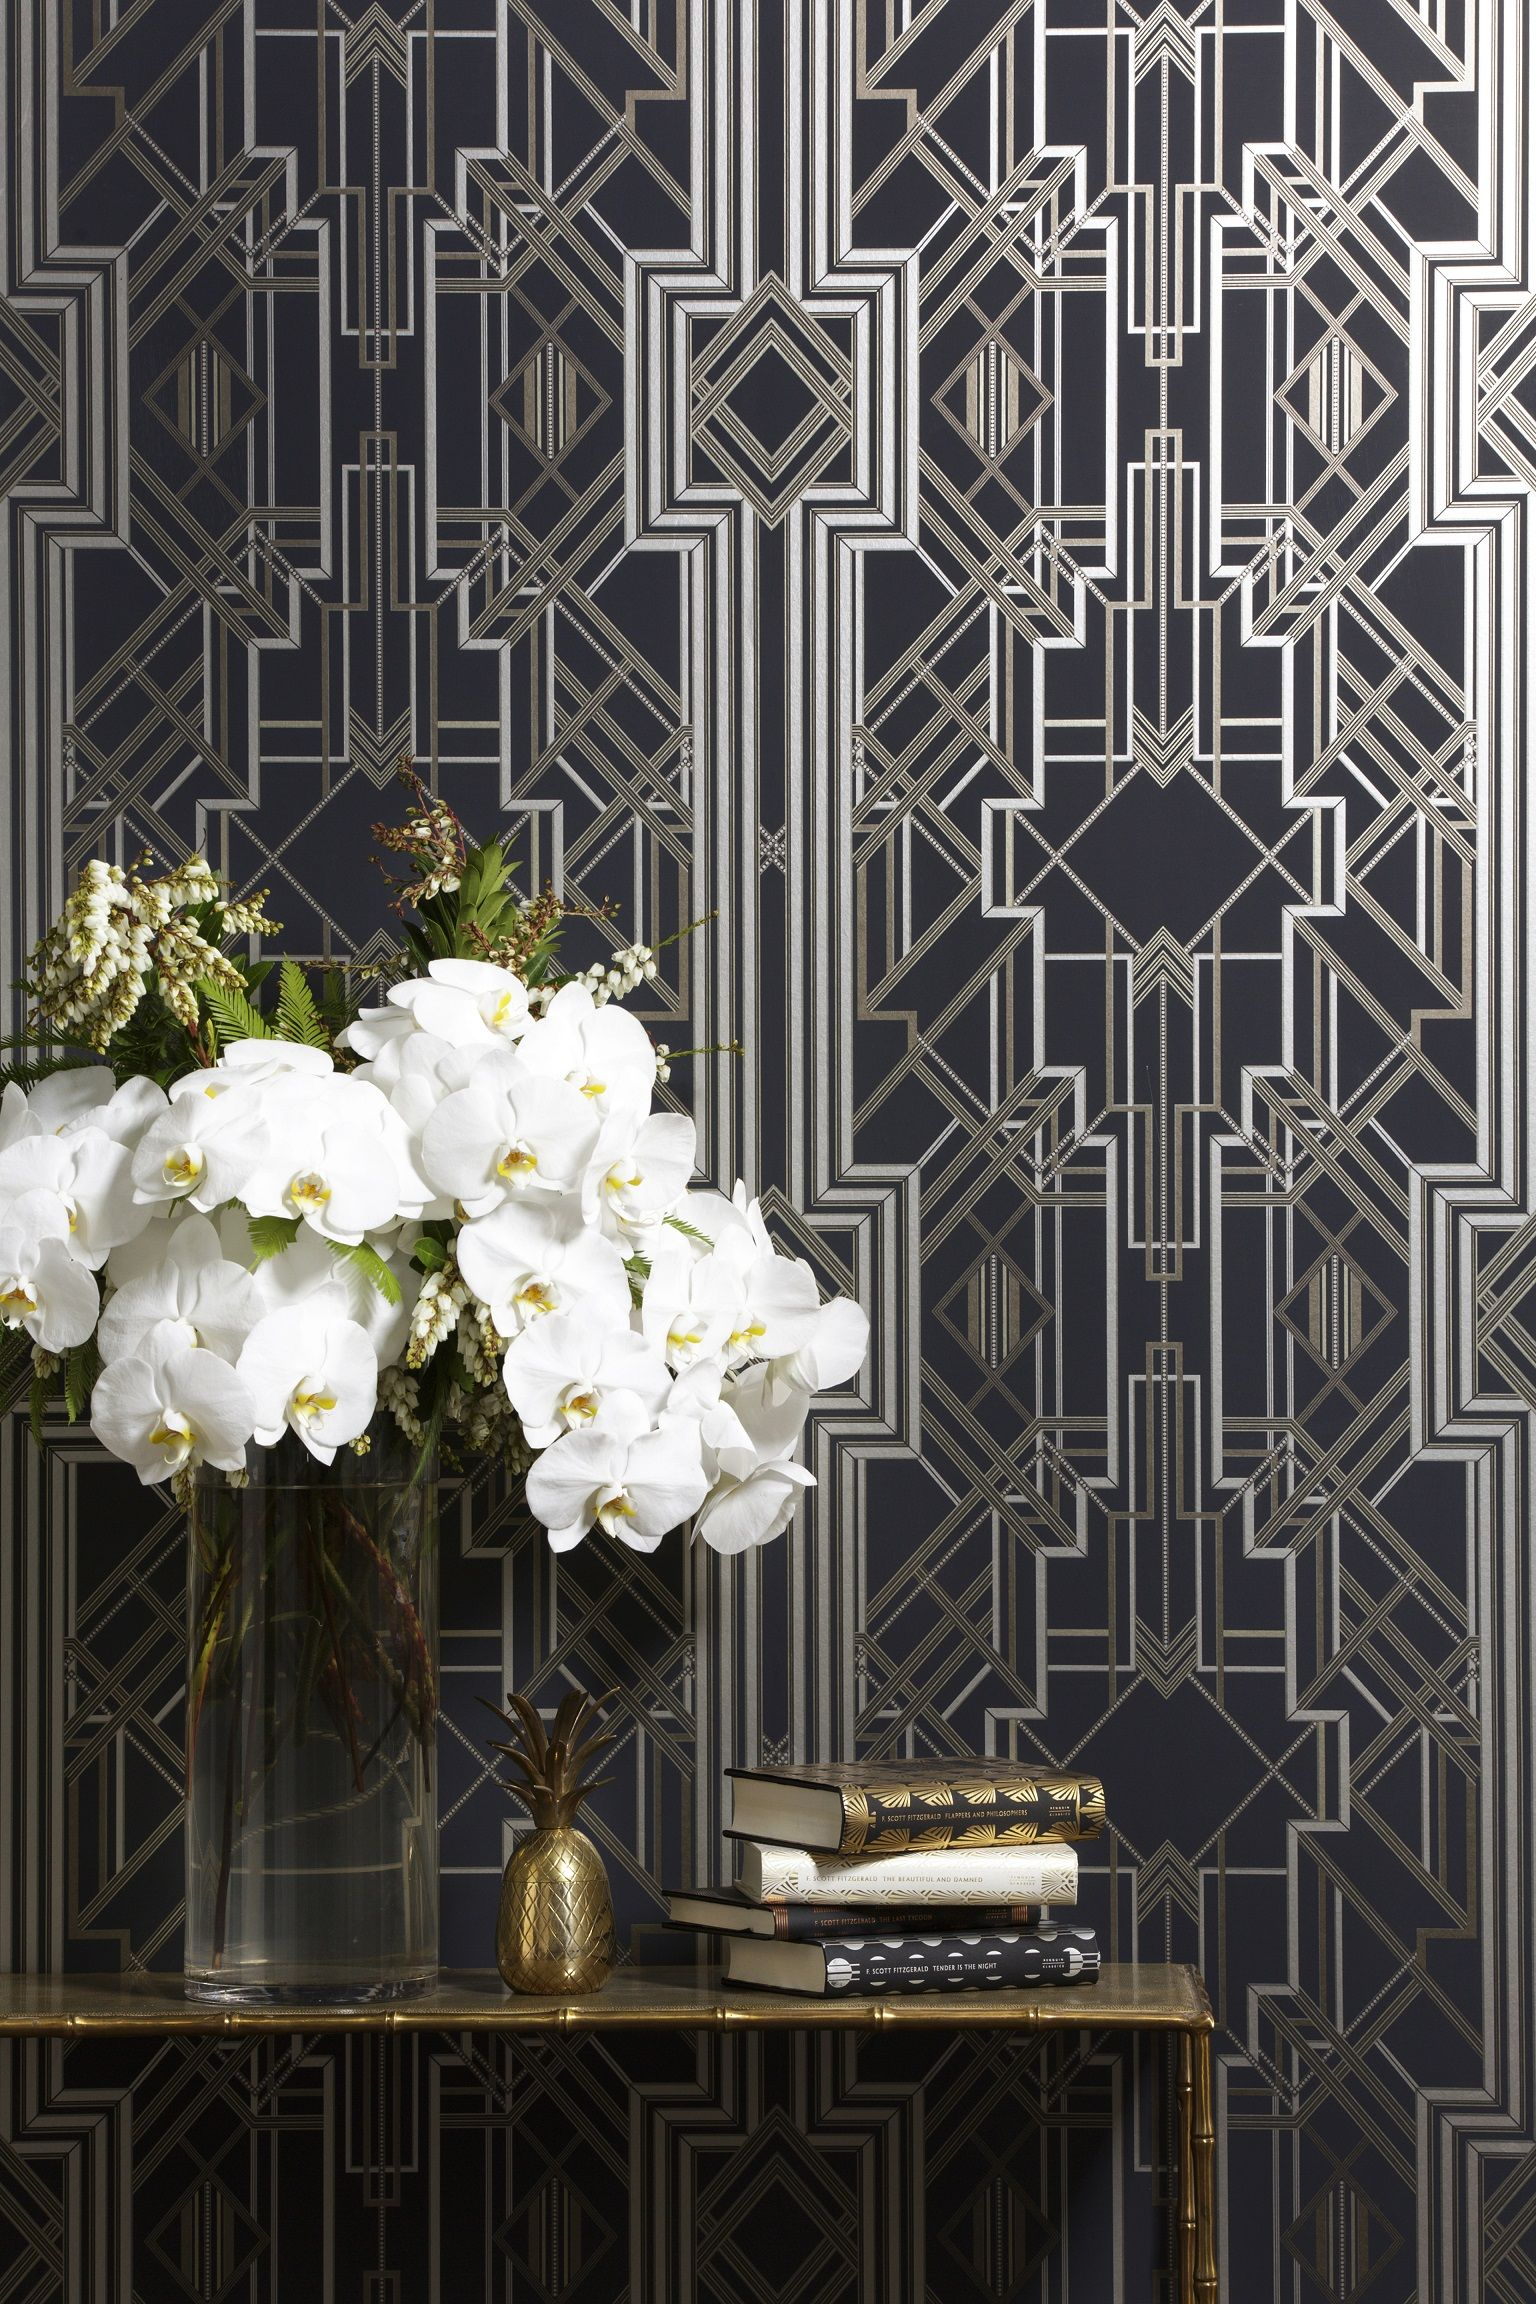 Wallpaper from Metropolis Collection by Catherine Martin for Great